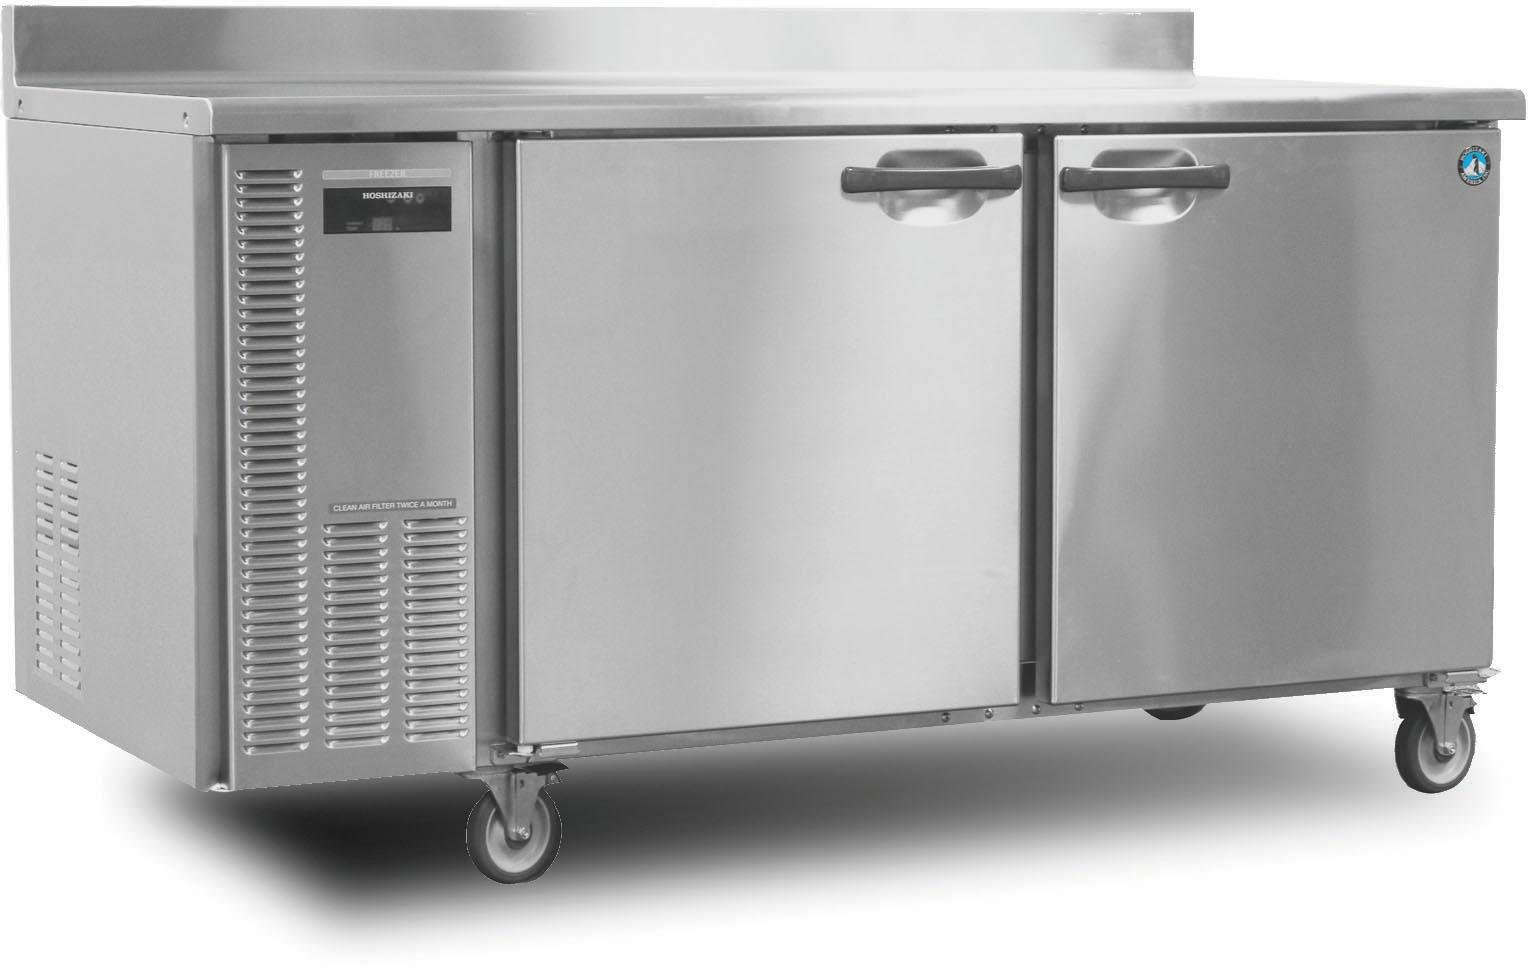 HWF68A 68'''' Professional Series Worktop Freezers with 18.8 cu. ft. Capacity EverCheck System Stainless Steel Interior and Exterior Removable Refrigeration System and Energy Efficient Automatic Hot Gas condensate Evaporator: Stainless Steel